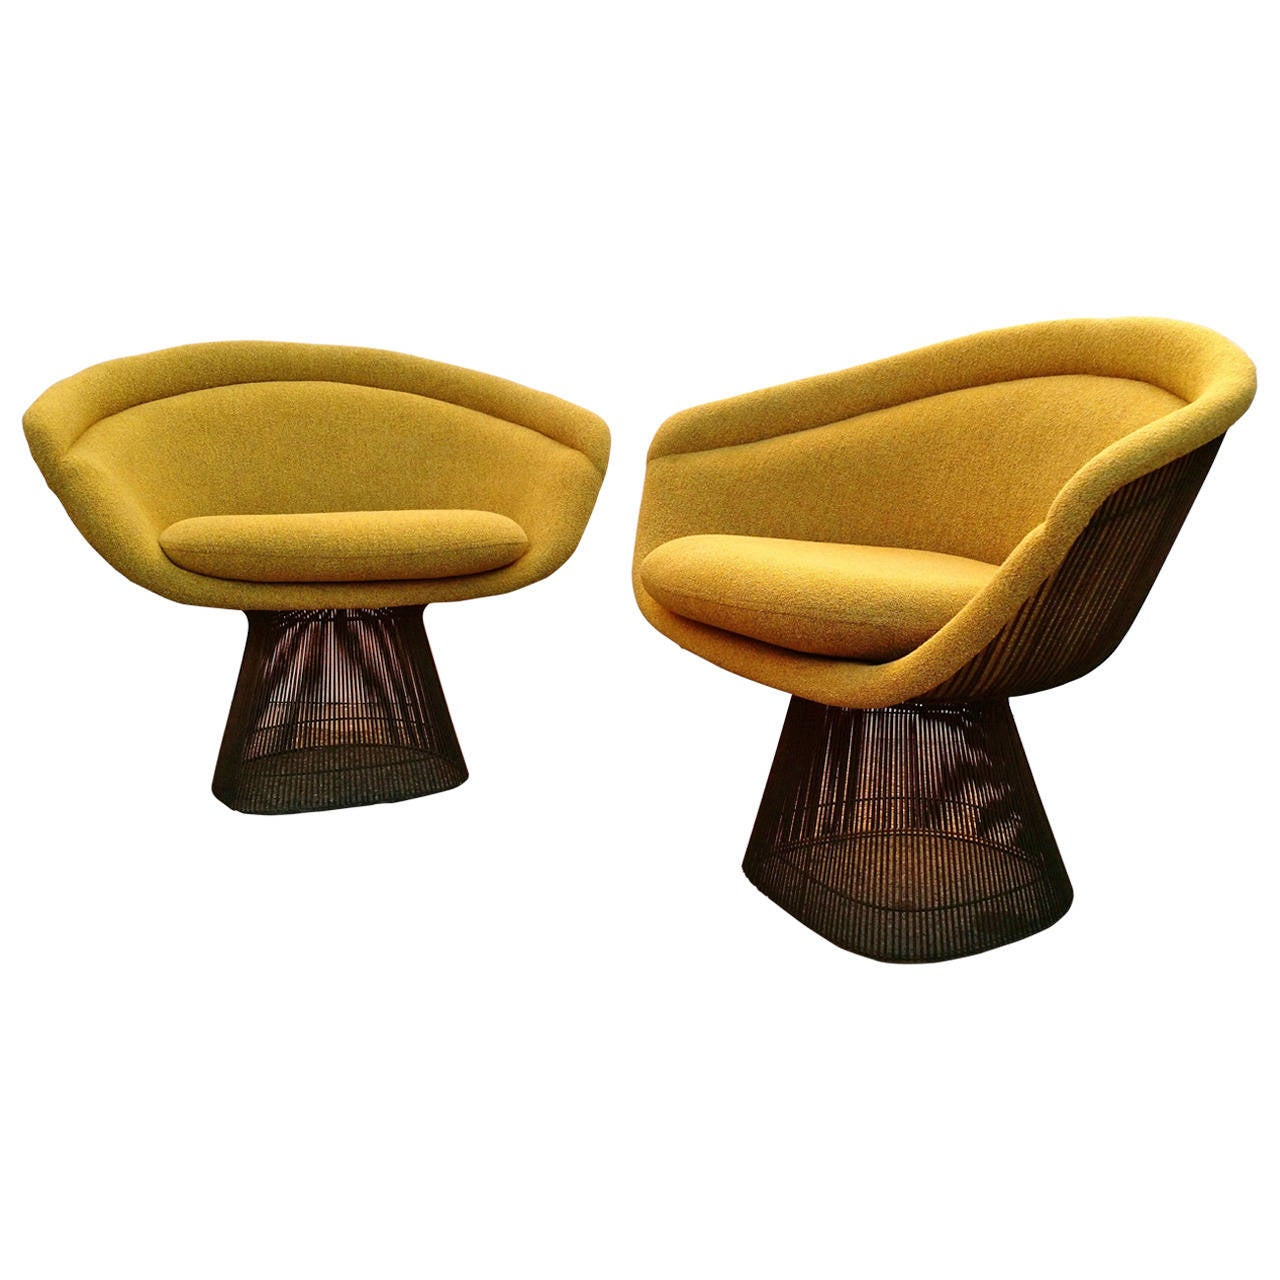 Mid-Century Modern Knoll Warren Platner Lounge Chairs With